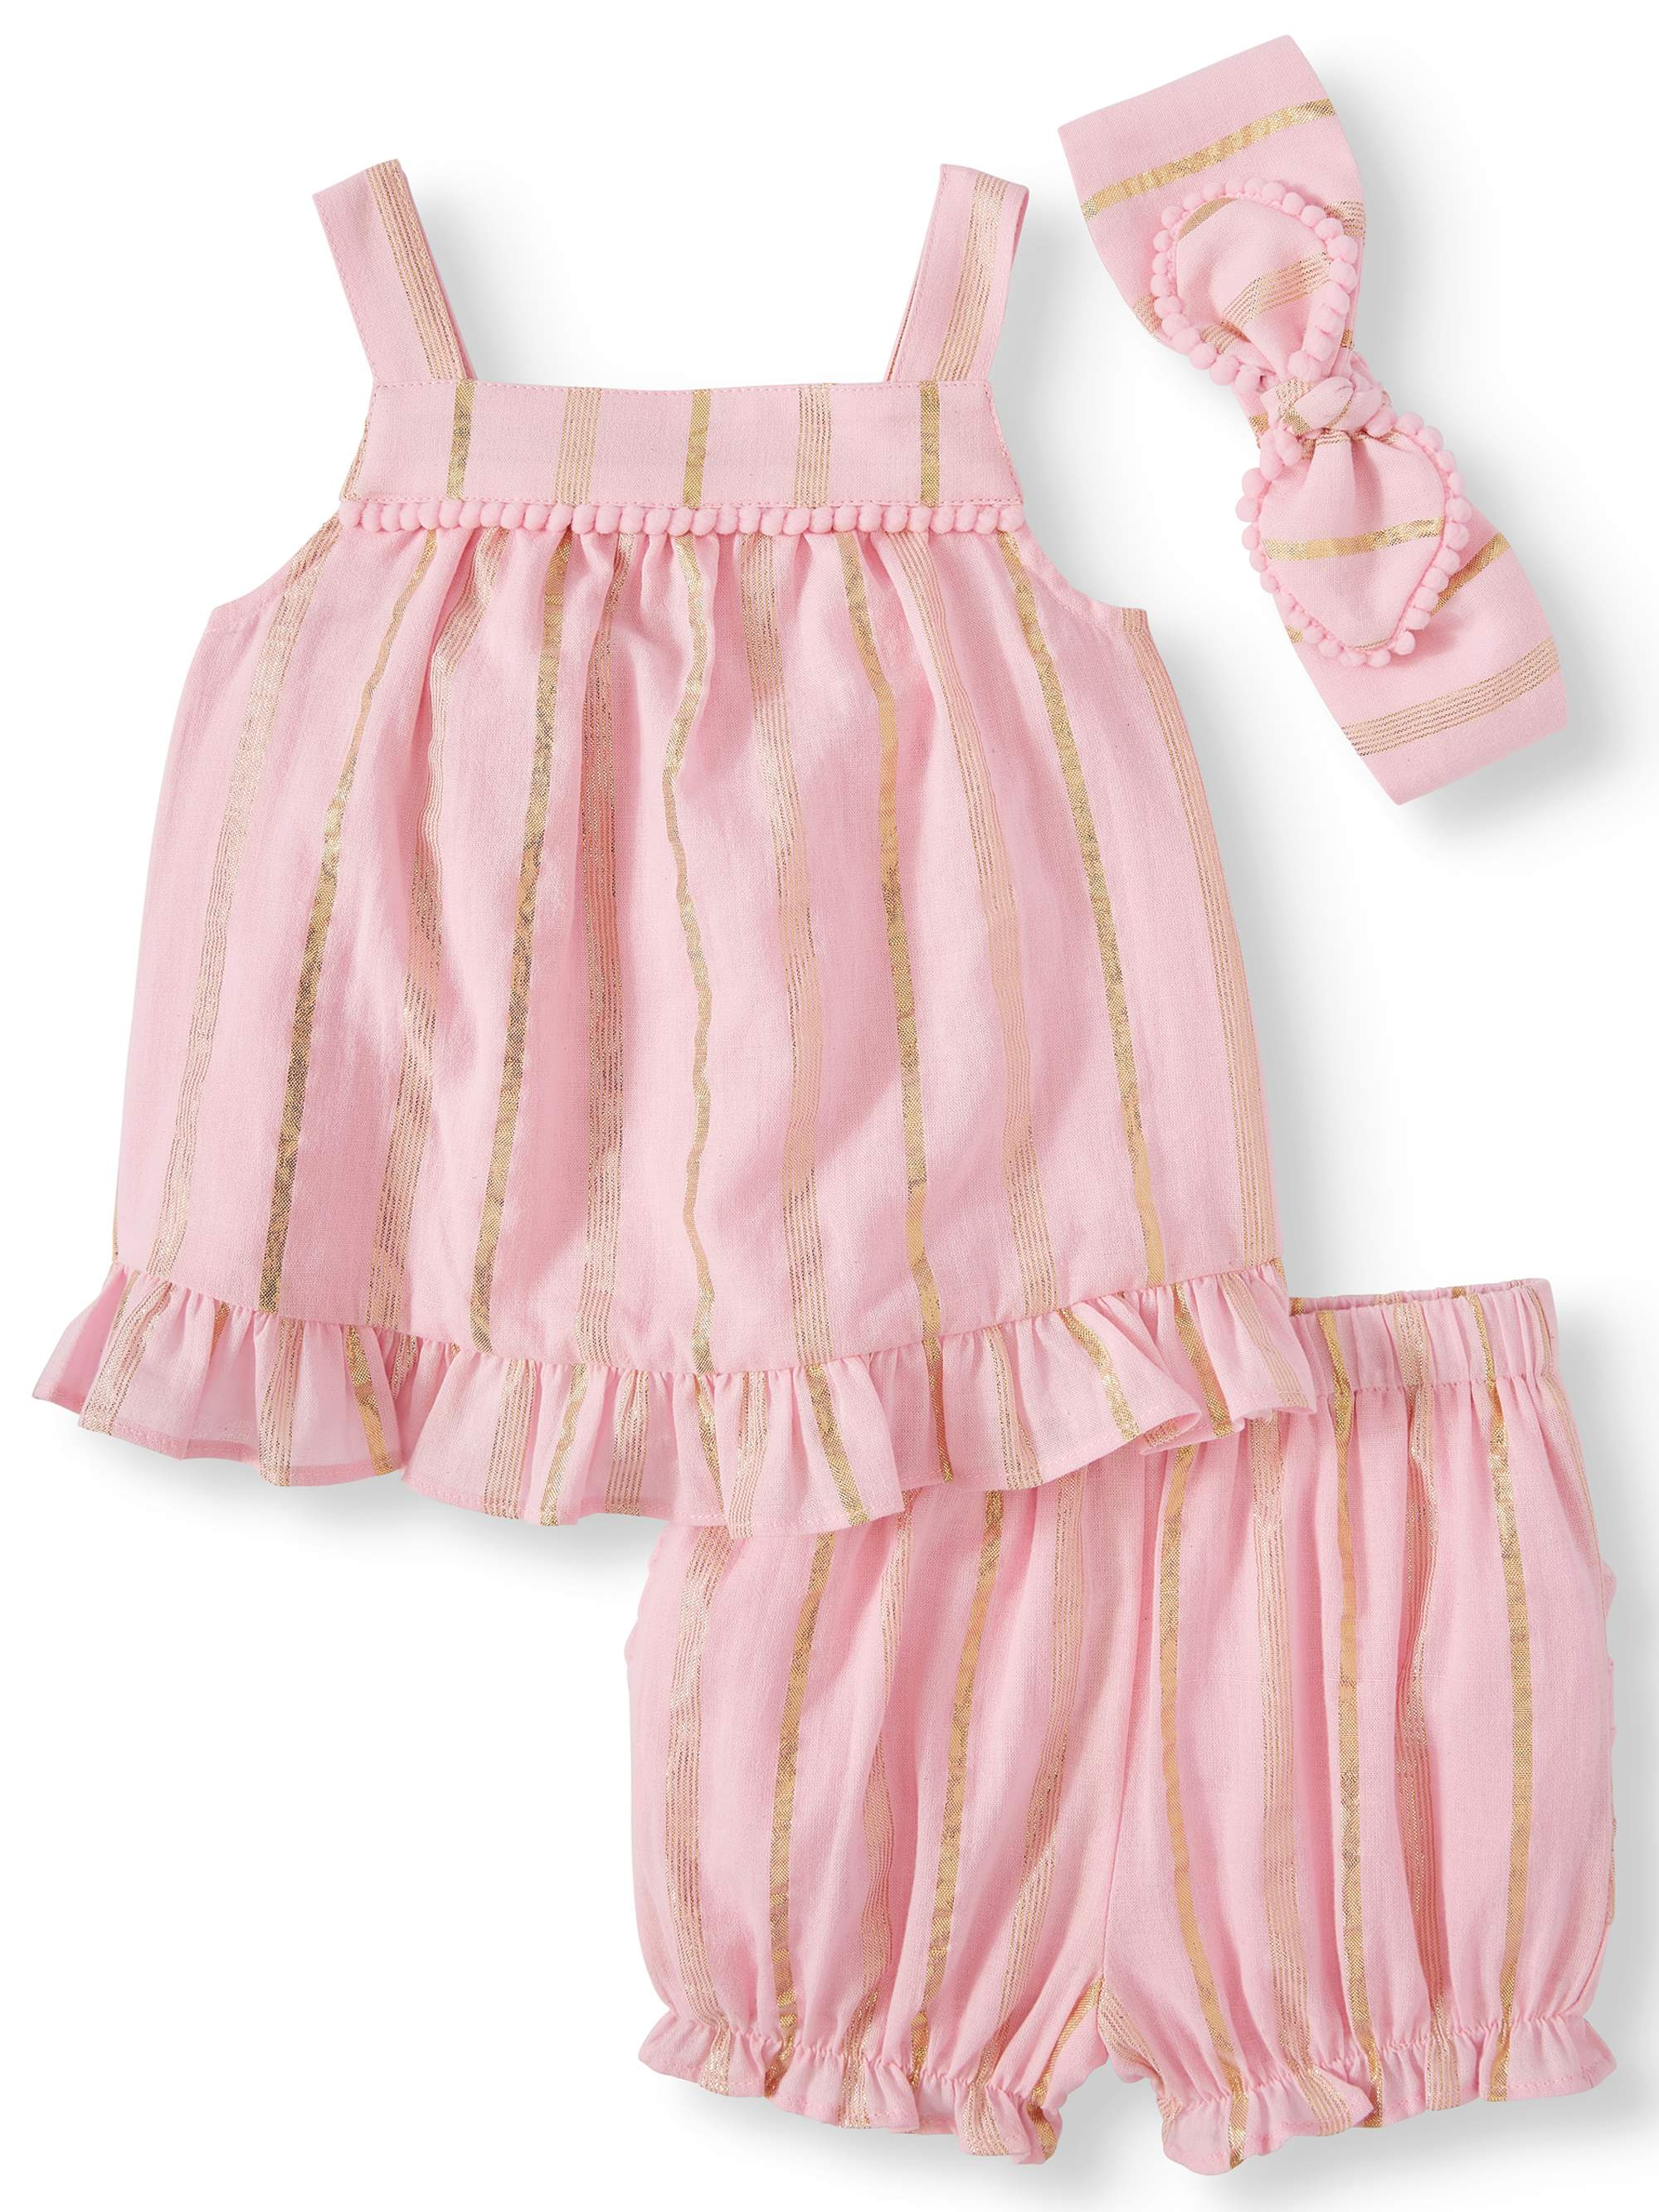 Baby Girls' Striped Woven Babydoll Top, Diaper Cover and Headband, 3-Piece Set